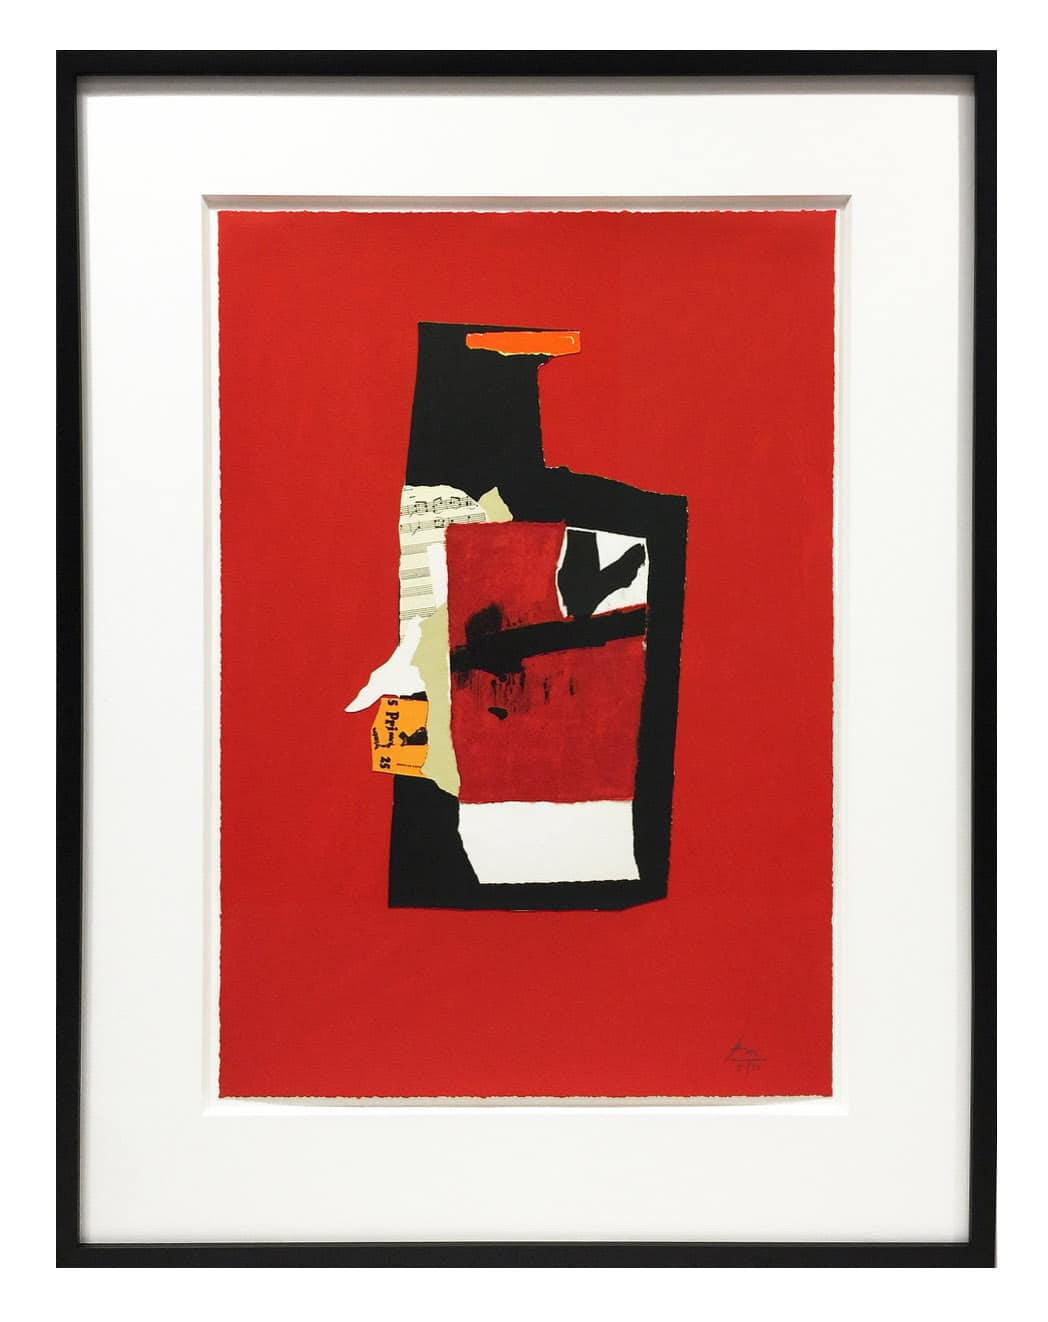 Robert Motherwell - Redness of Red Framed